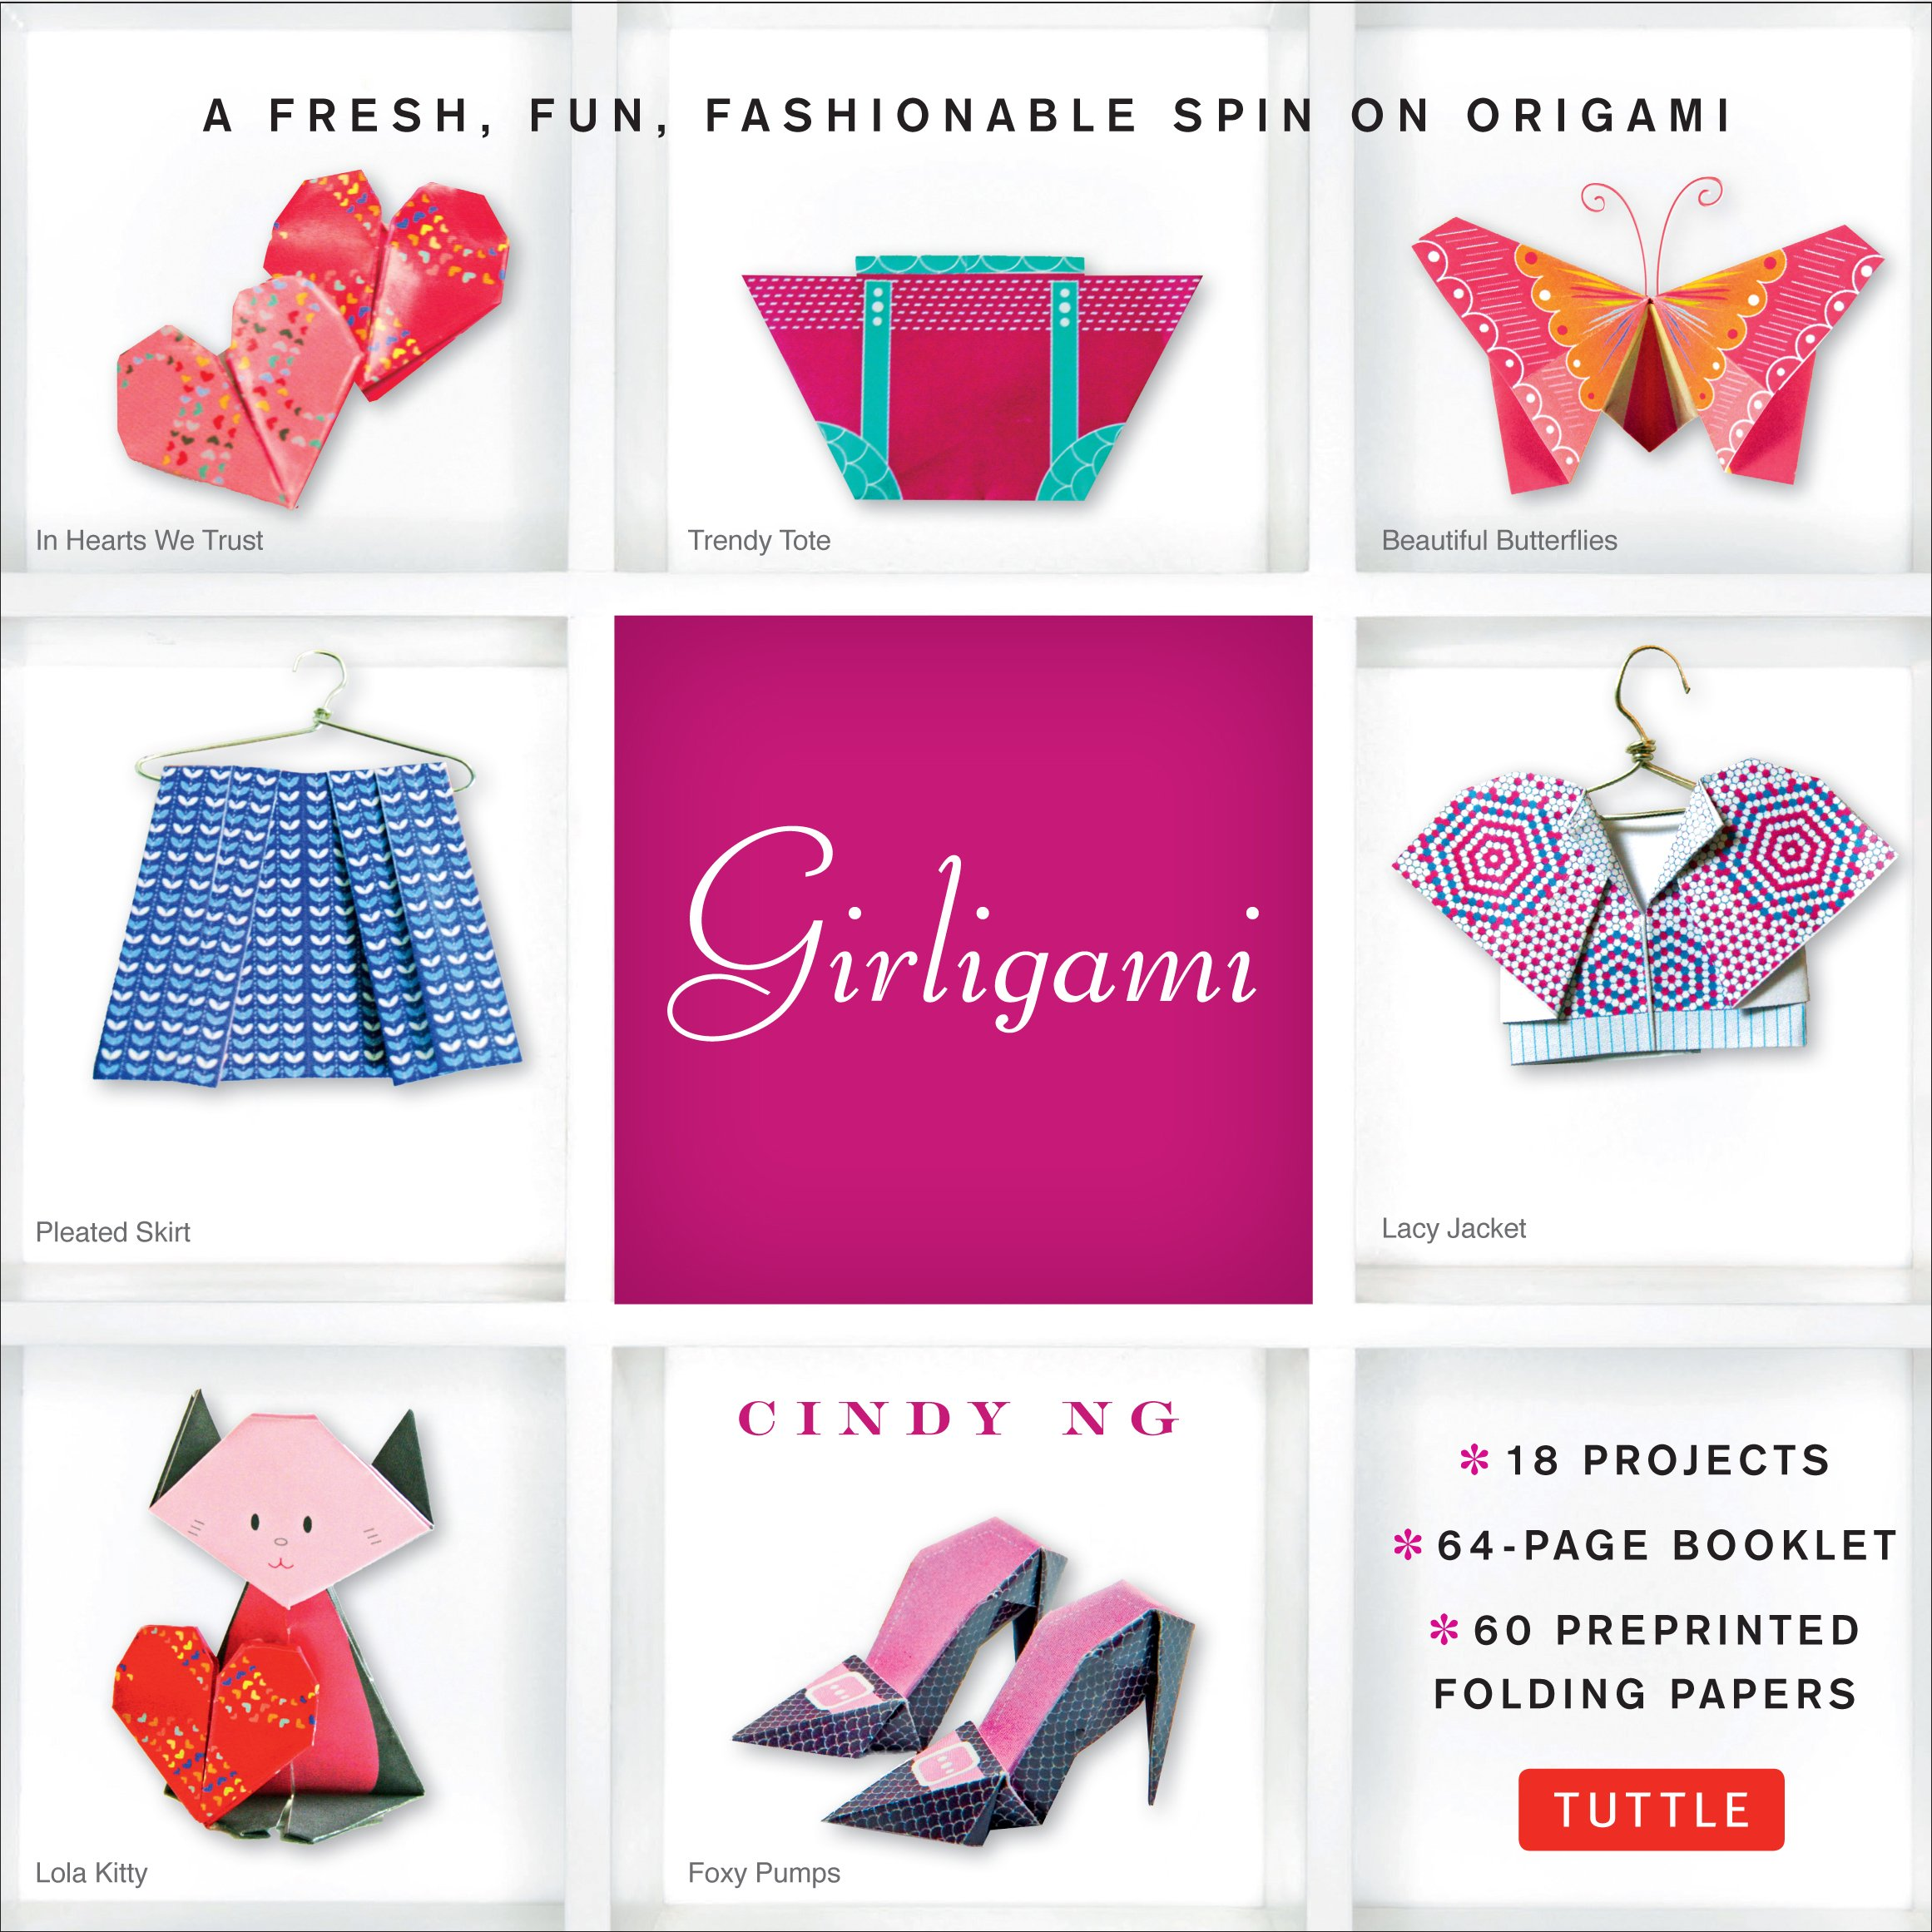 Read Online Girligami Kit: A Fresh, Fun, Fashionable Spin on Origami: Origami for Girls Kit with Origami Book, 60 High-Quality Origami Papers: Great for Kids! pdf